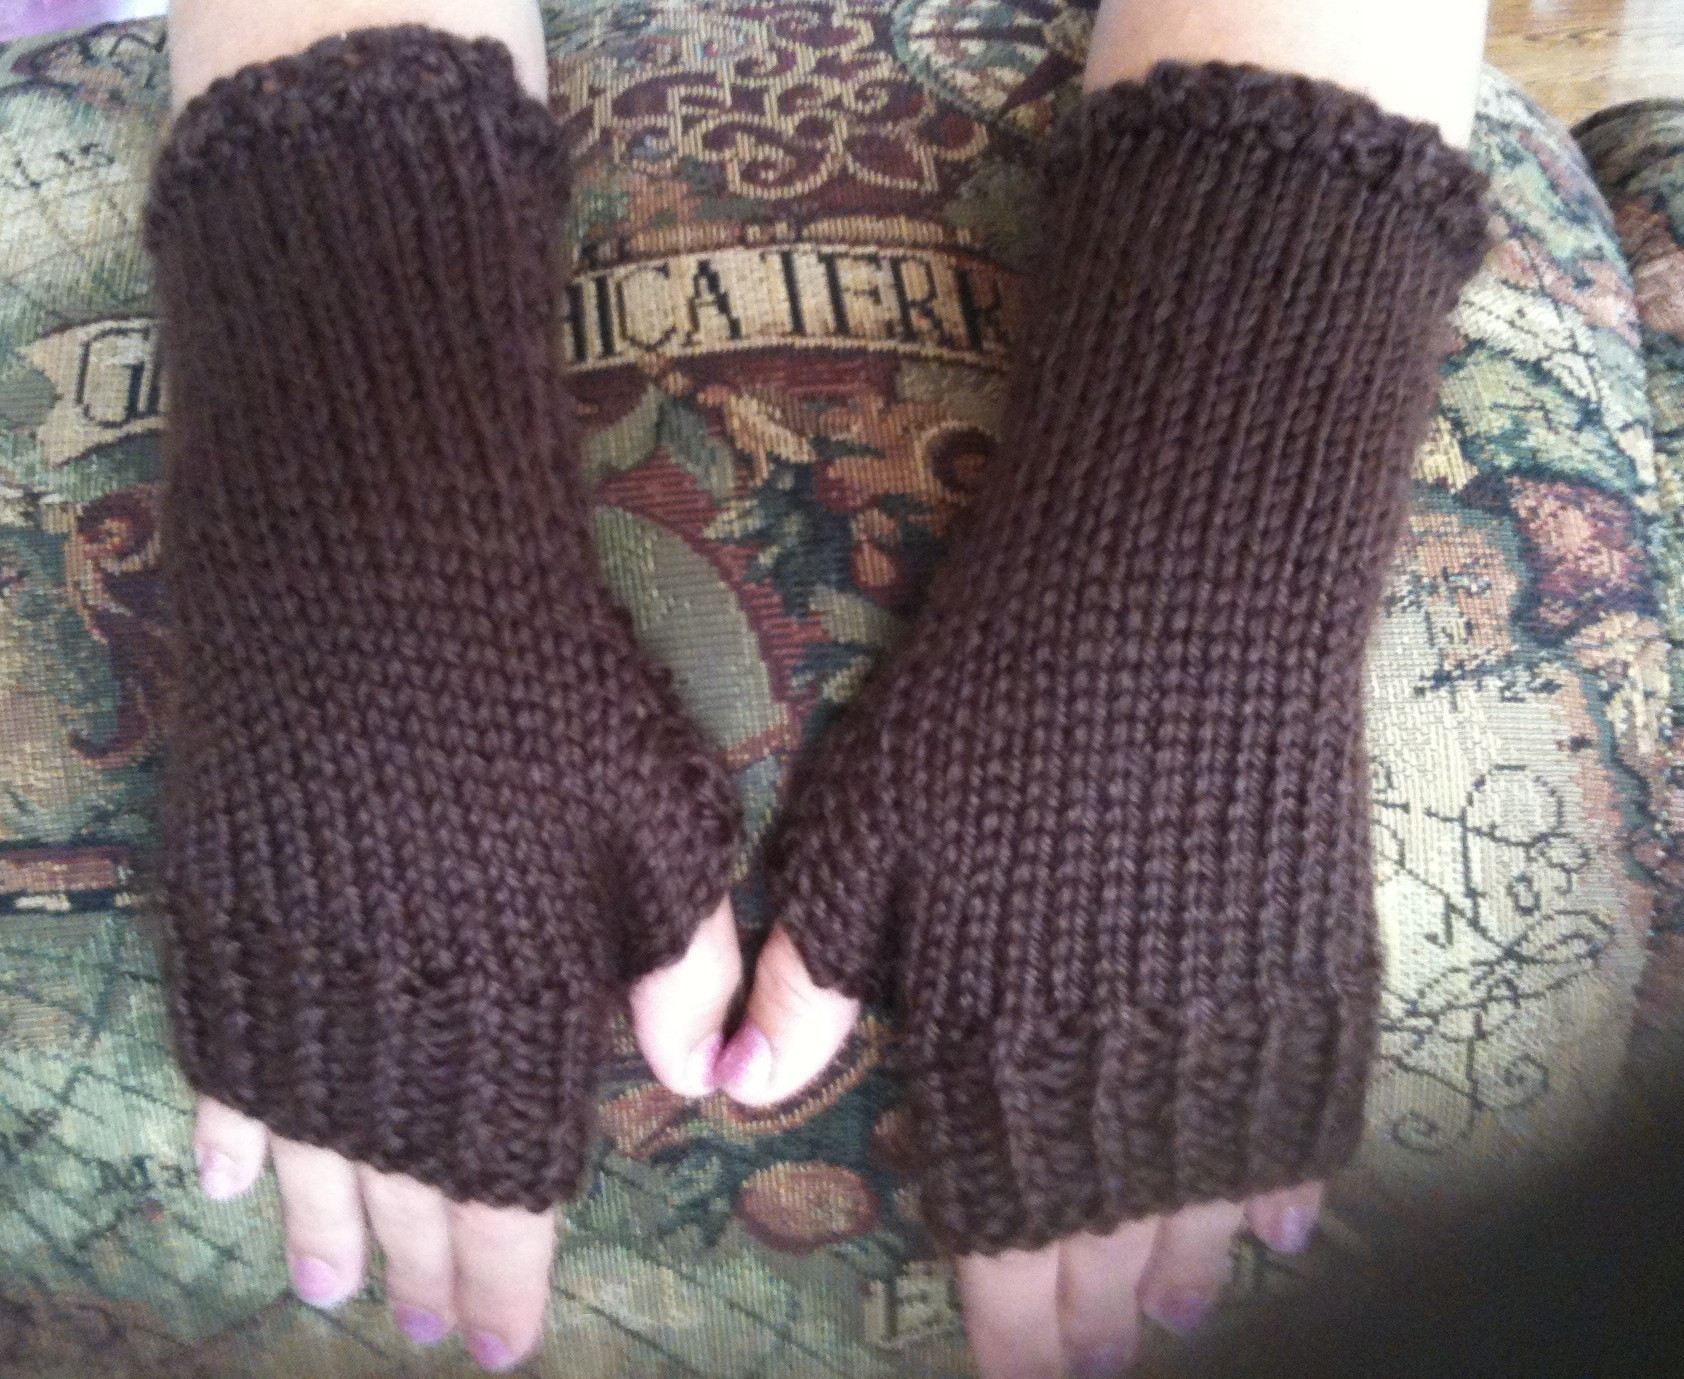 Knit Fingerless Gloves Luxury How to Knit Close Fitting Fingerless Gloves 21 Steps Of Gorgeous 47 Pics Knit Fingerless Gloves